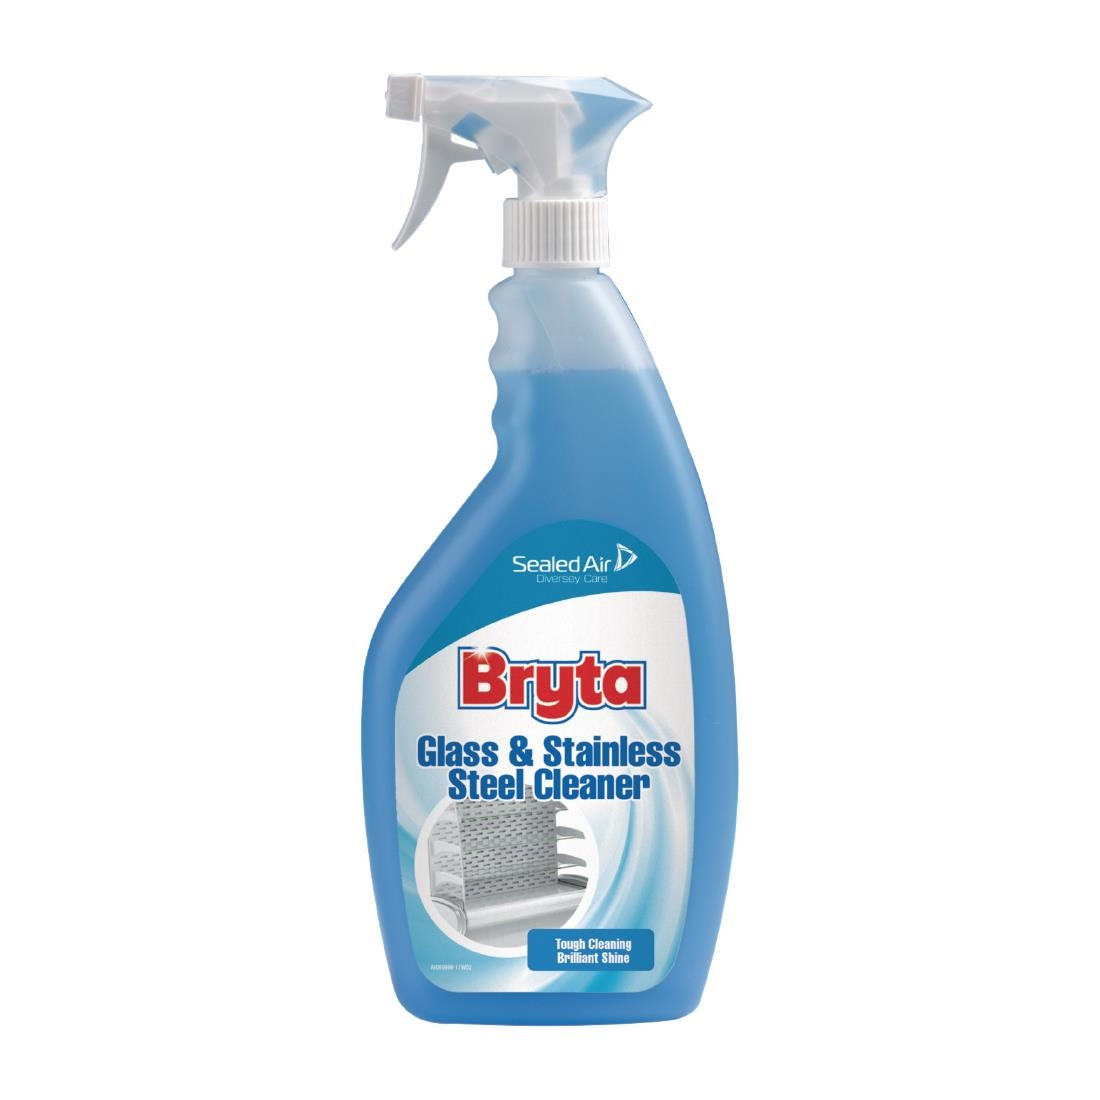 Image of Bryta Glass and Stainless Steel Cleaner Ready To Use 750ml